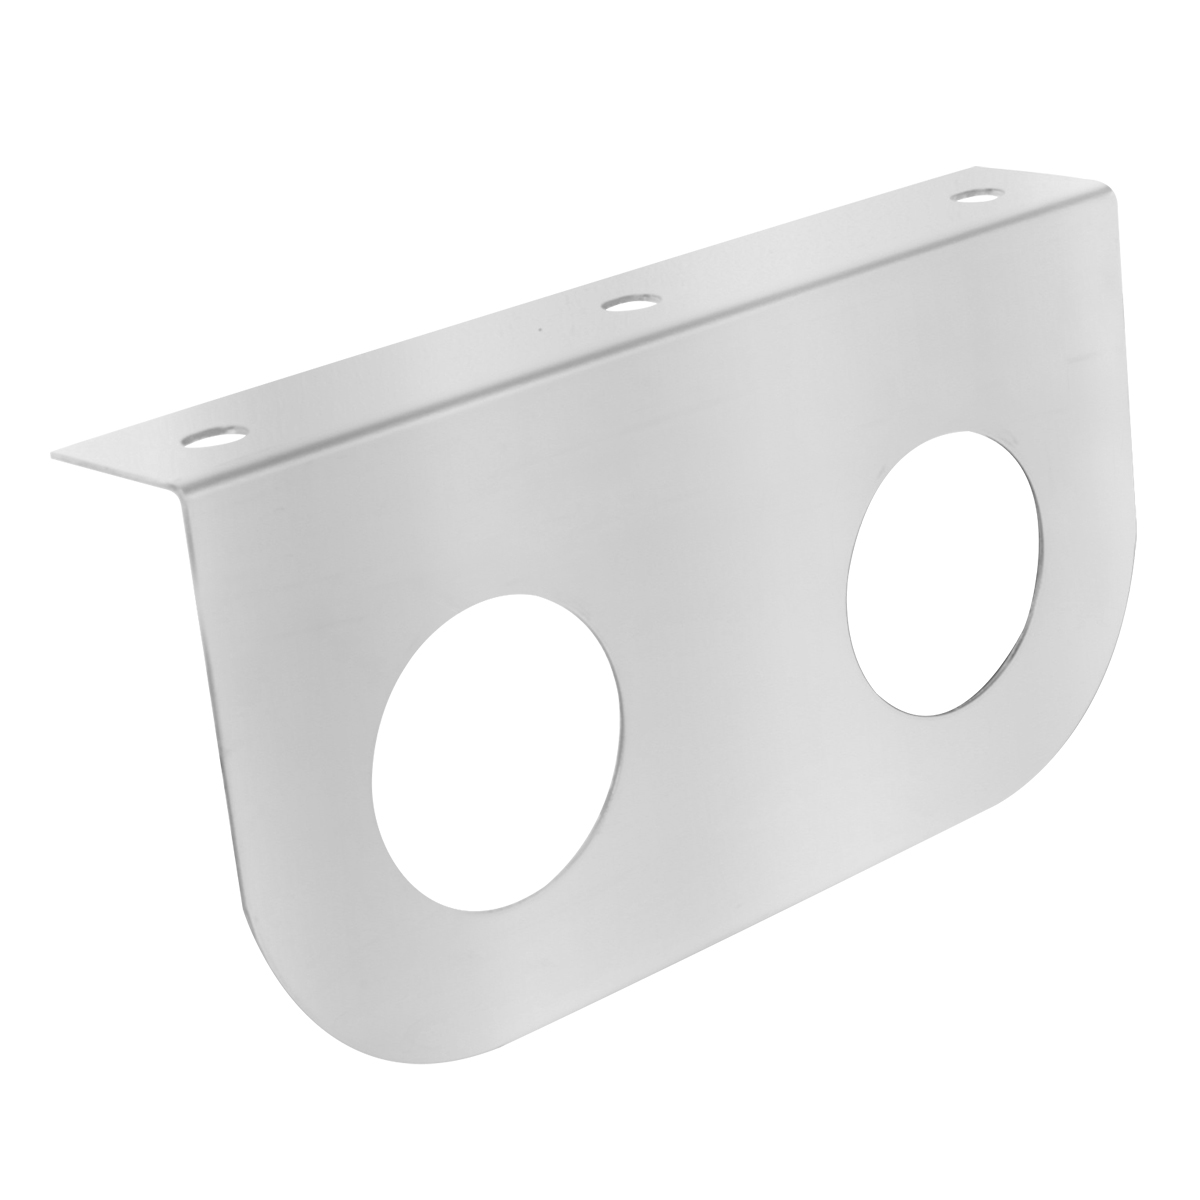 #81453 Stainless Steel Light Bracket Only